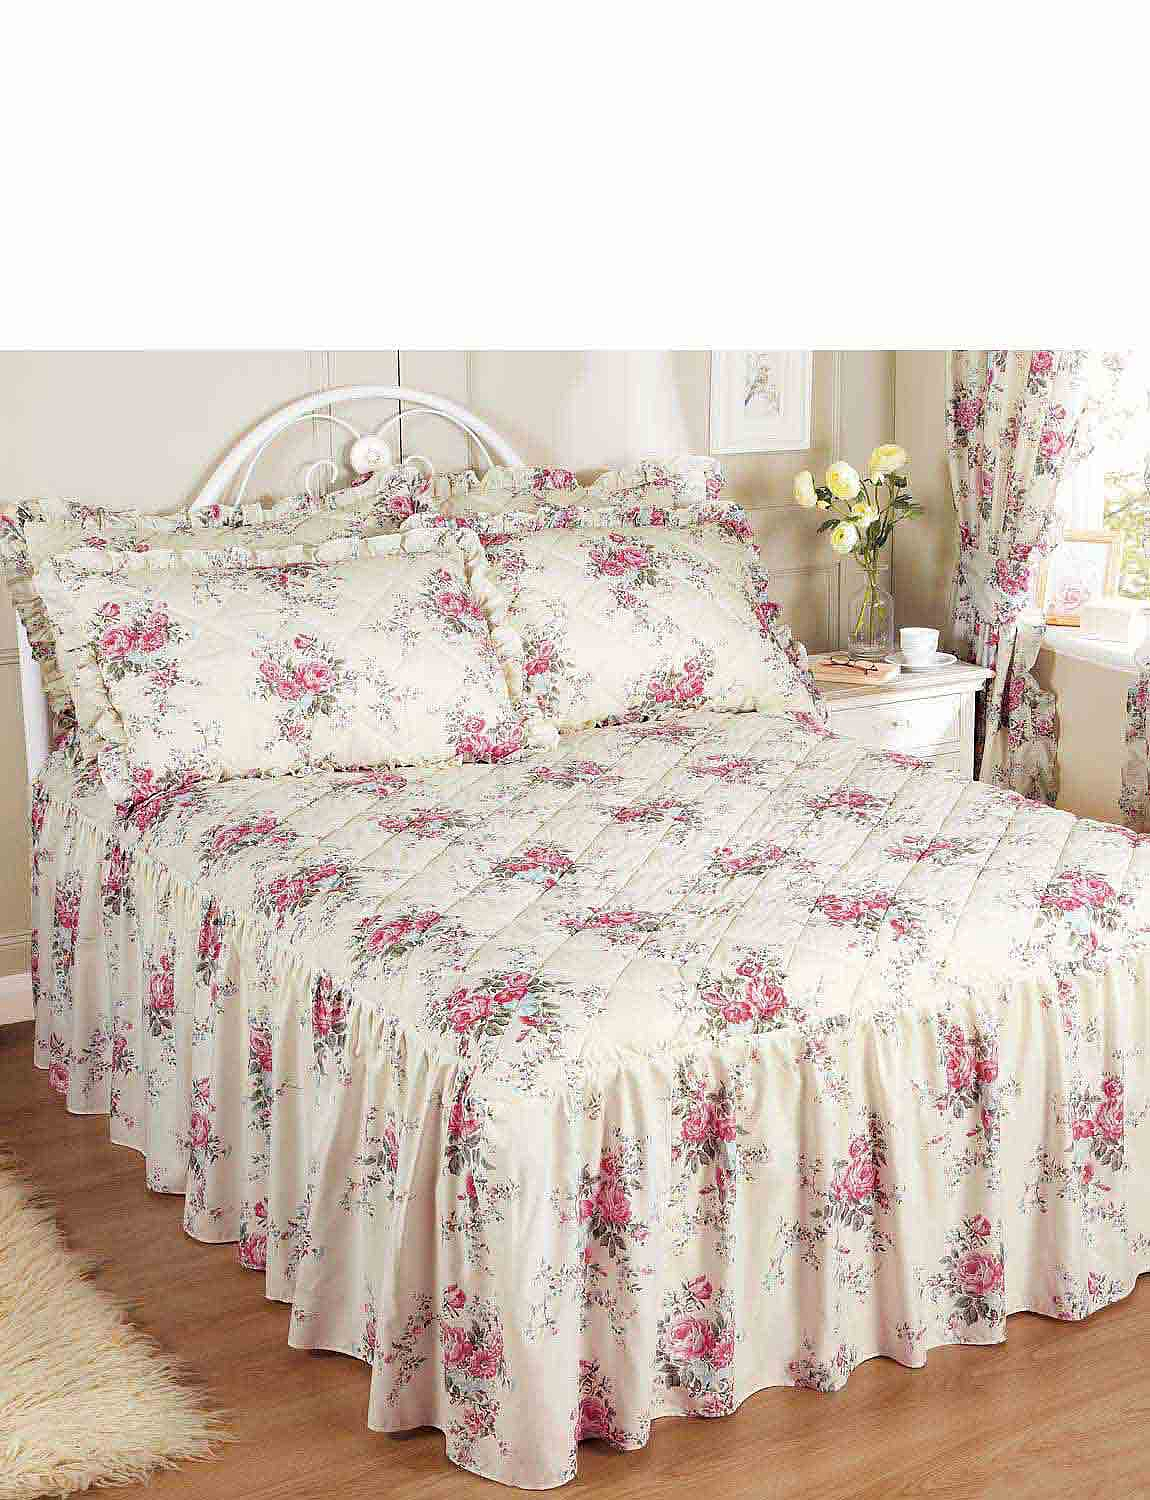 Quilted Bedspread  - Rose